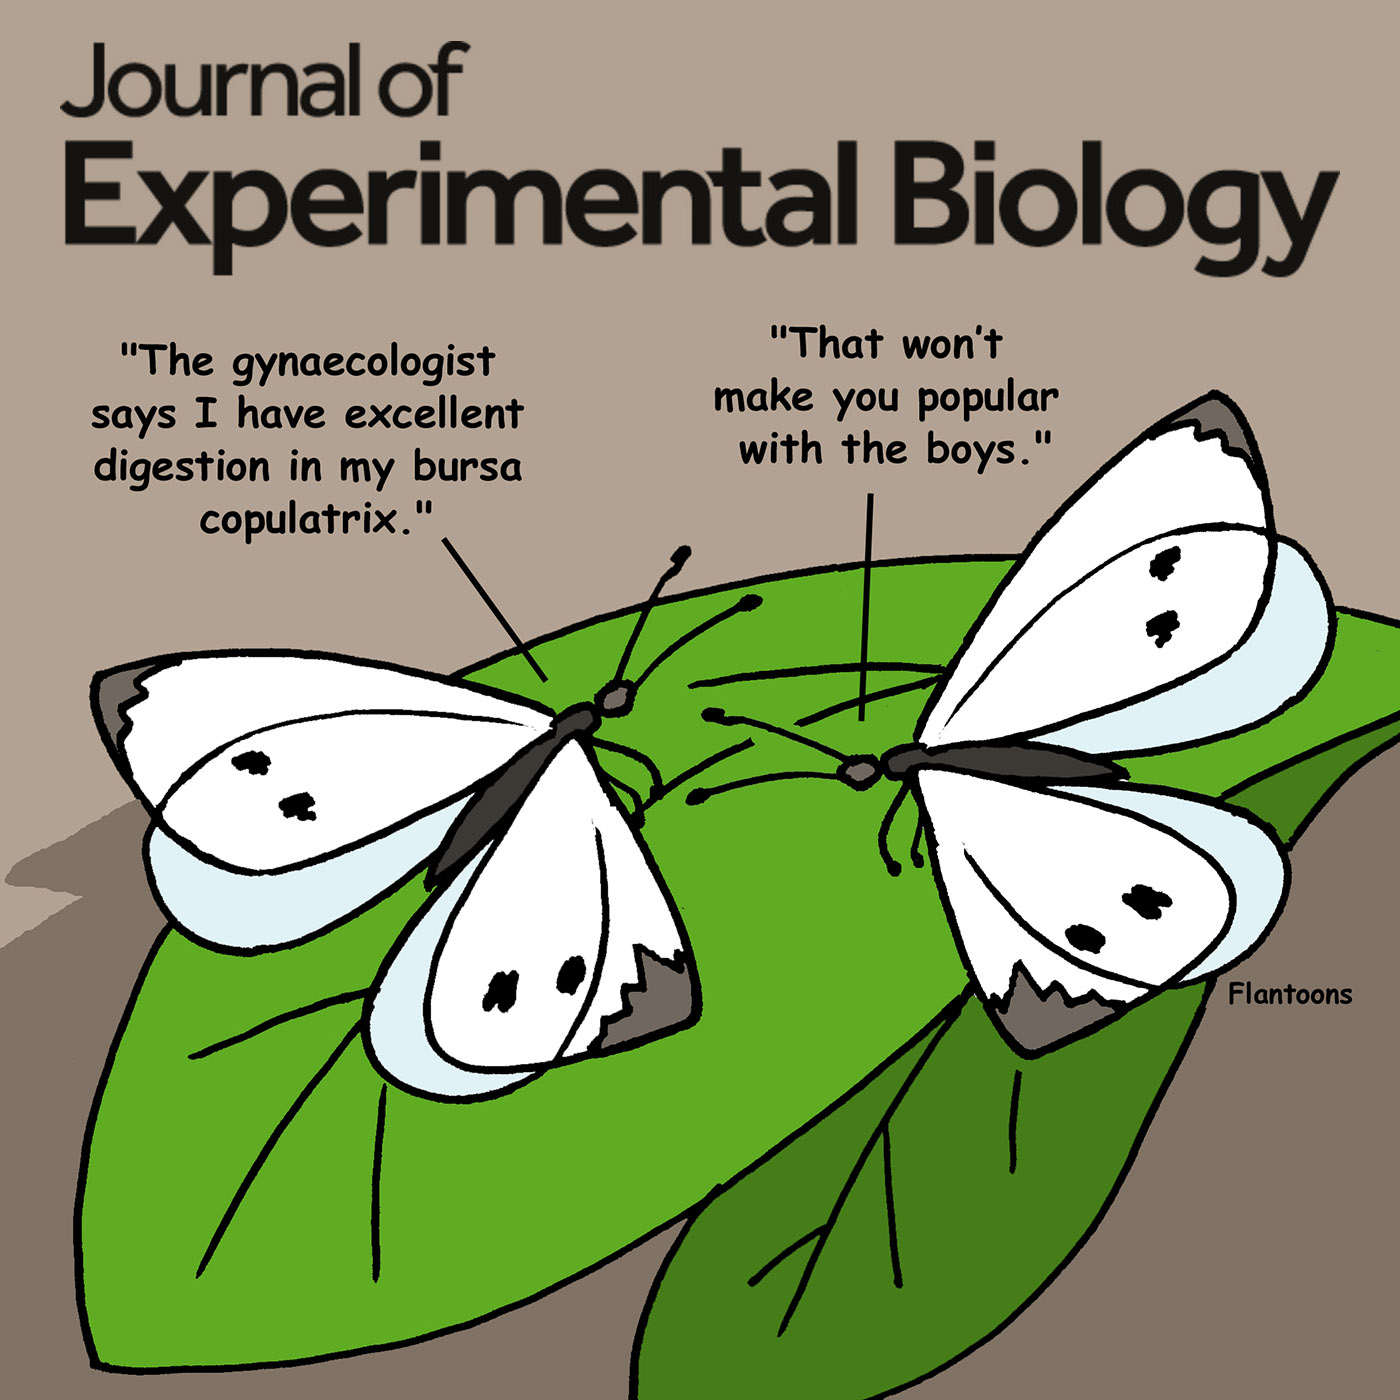 Journal of Experimental Biology coverage of our research on Pieris rapae reproductive physiology